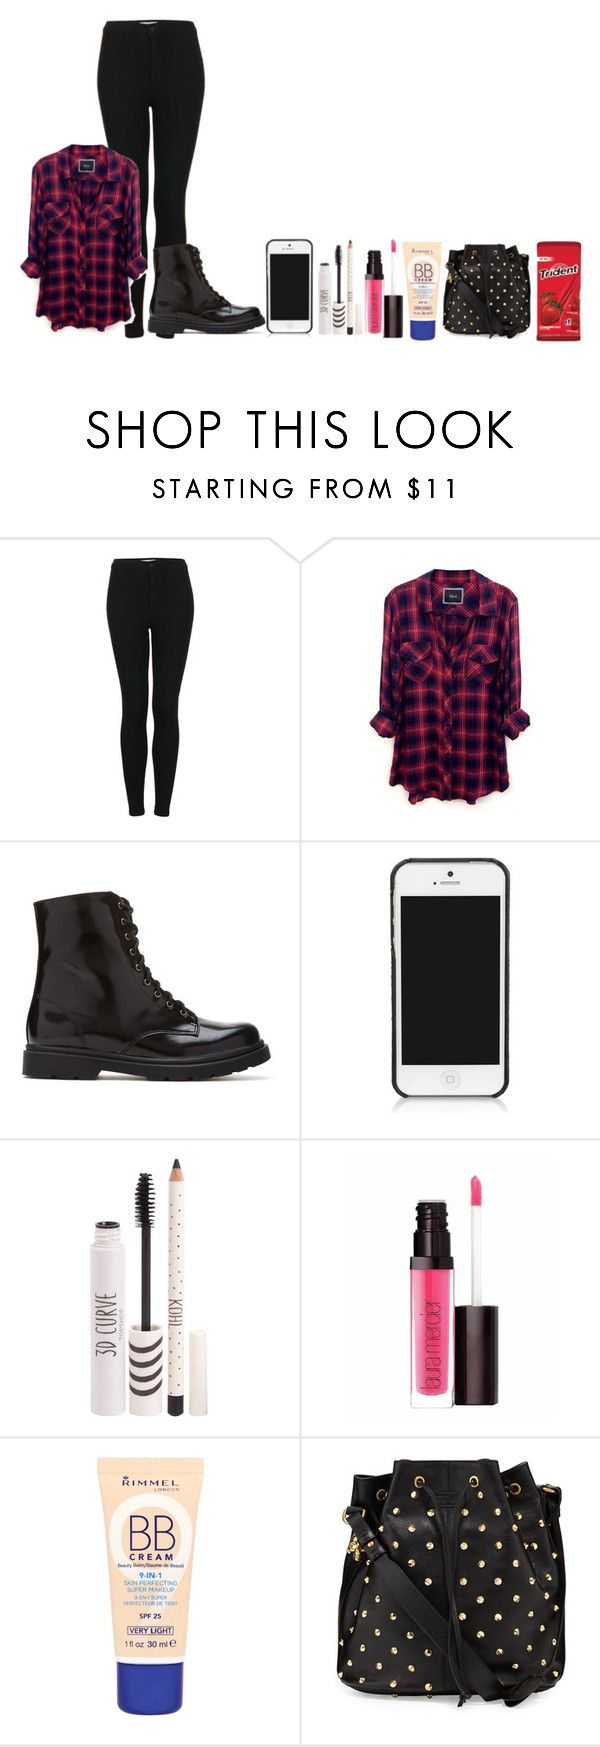 """""""Night Out"""" by xkidinthedarkx ❤ liked on Polyvore featuring Topshop, Rails, Forever 21, Tory Burch, Laura Mercier, Rimmel and Alexander McQueen"""